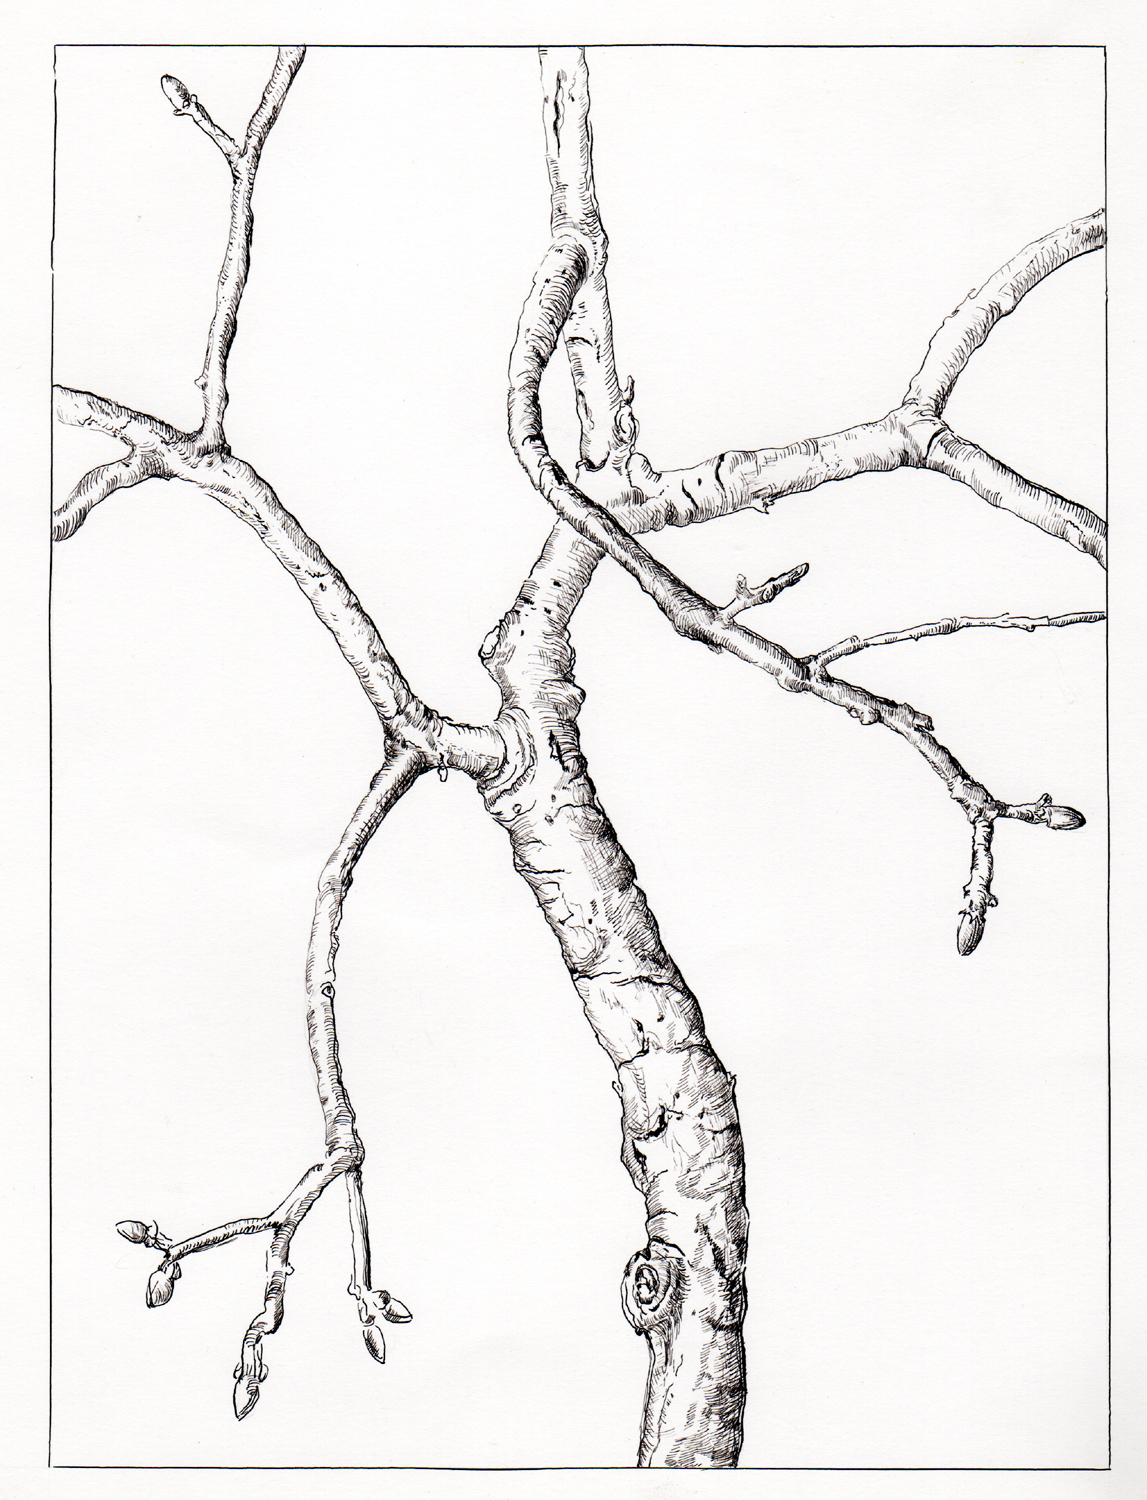 ink-drawing-branches.jpg